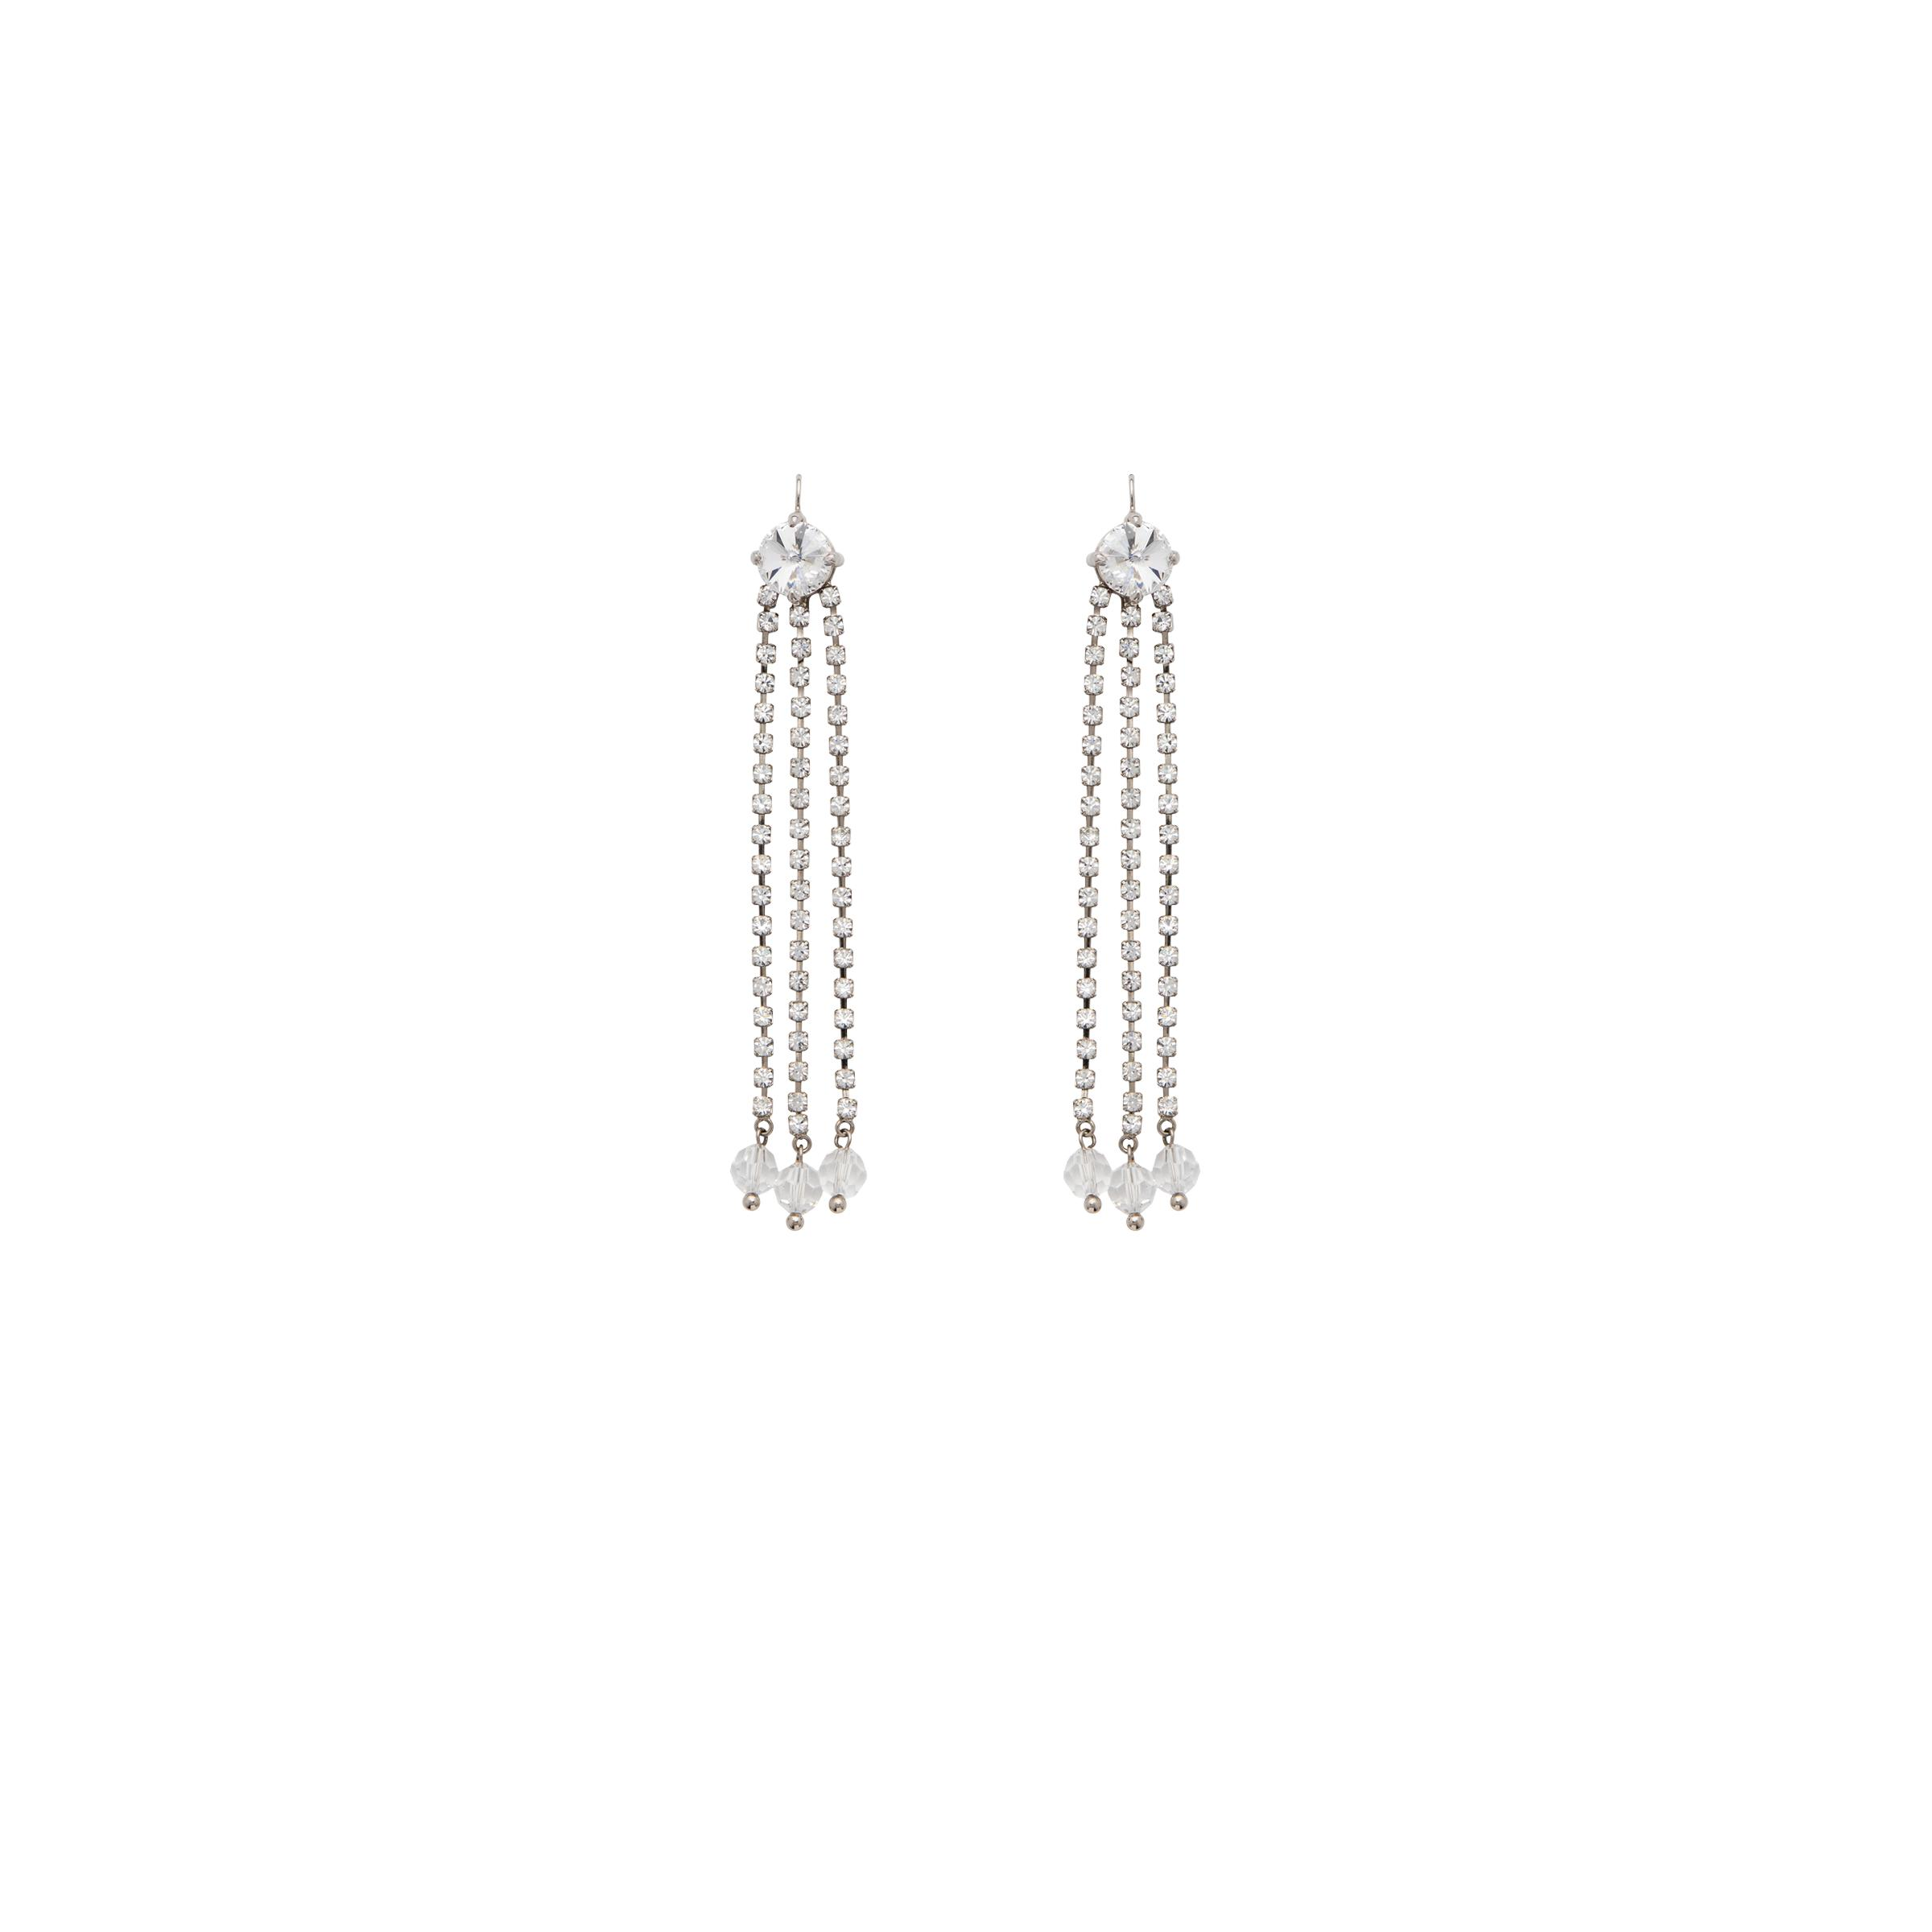 Pendant Earrings With Crystals Women Crystal